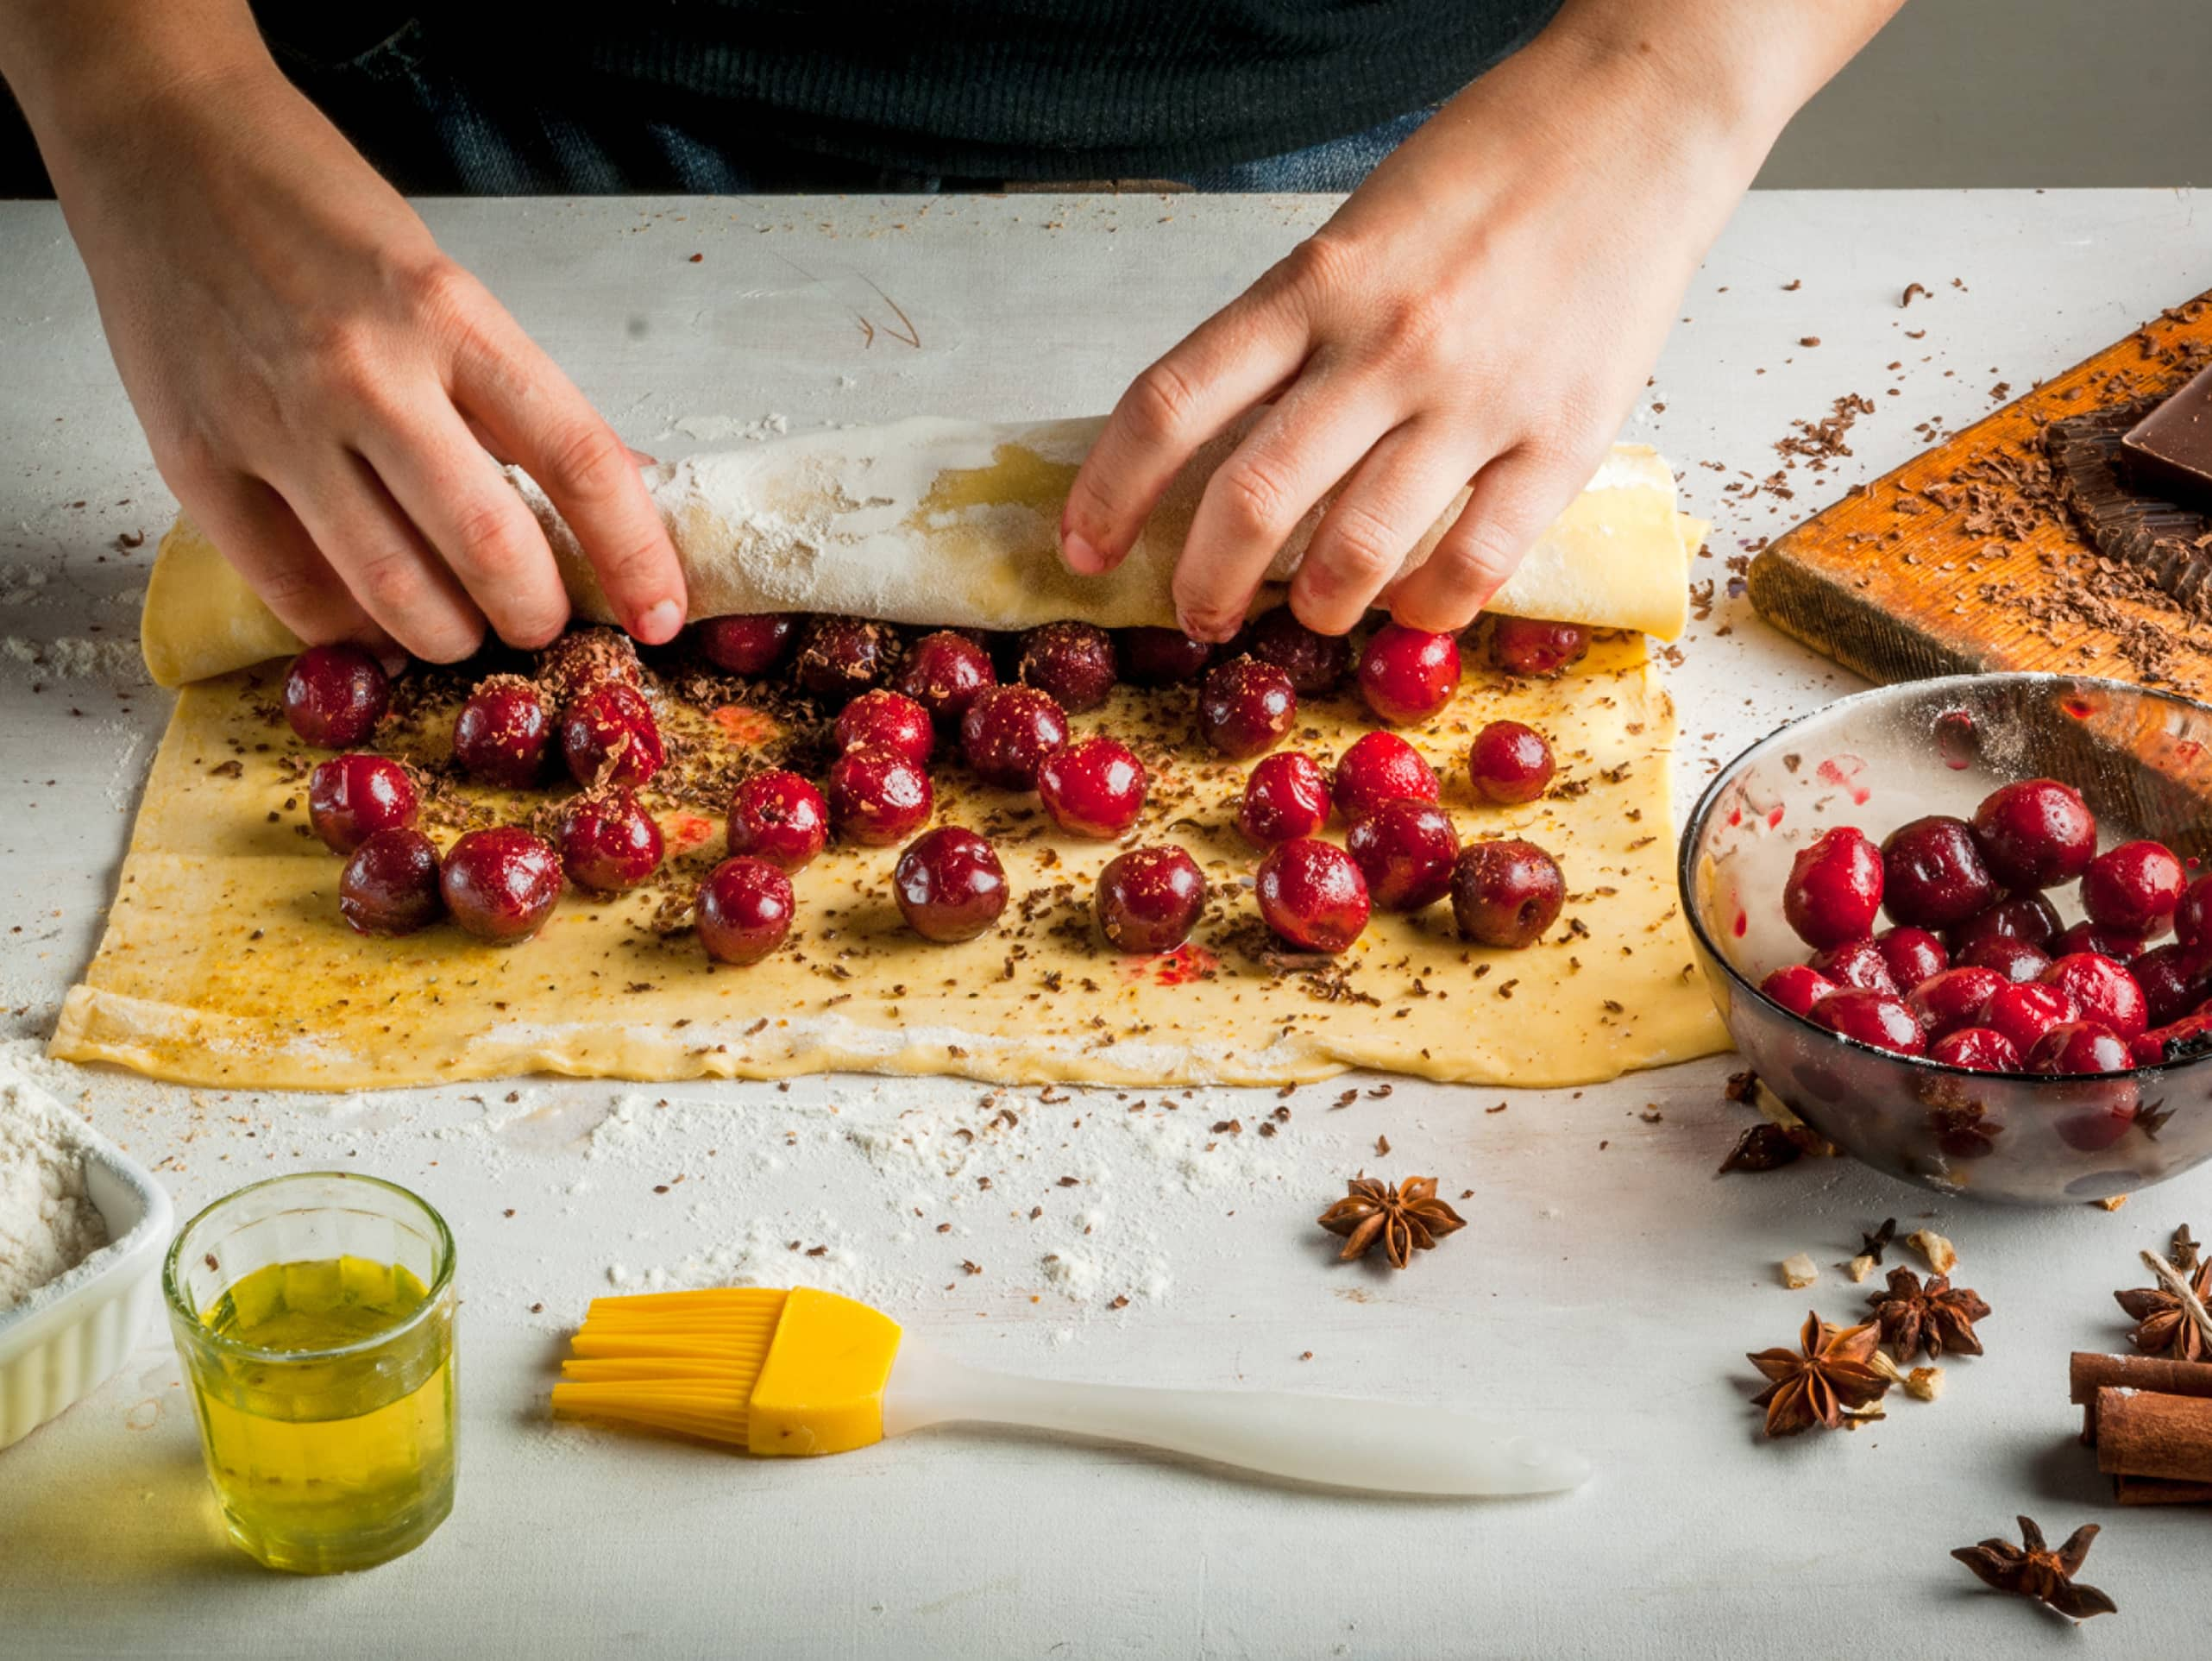 Learn the secrets of making strudel